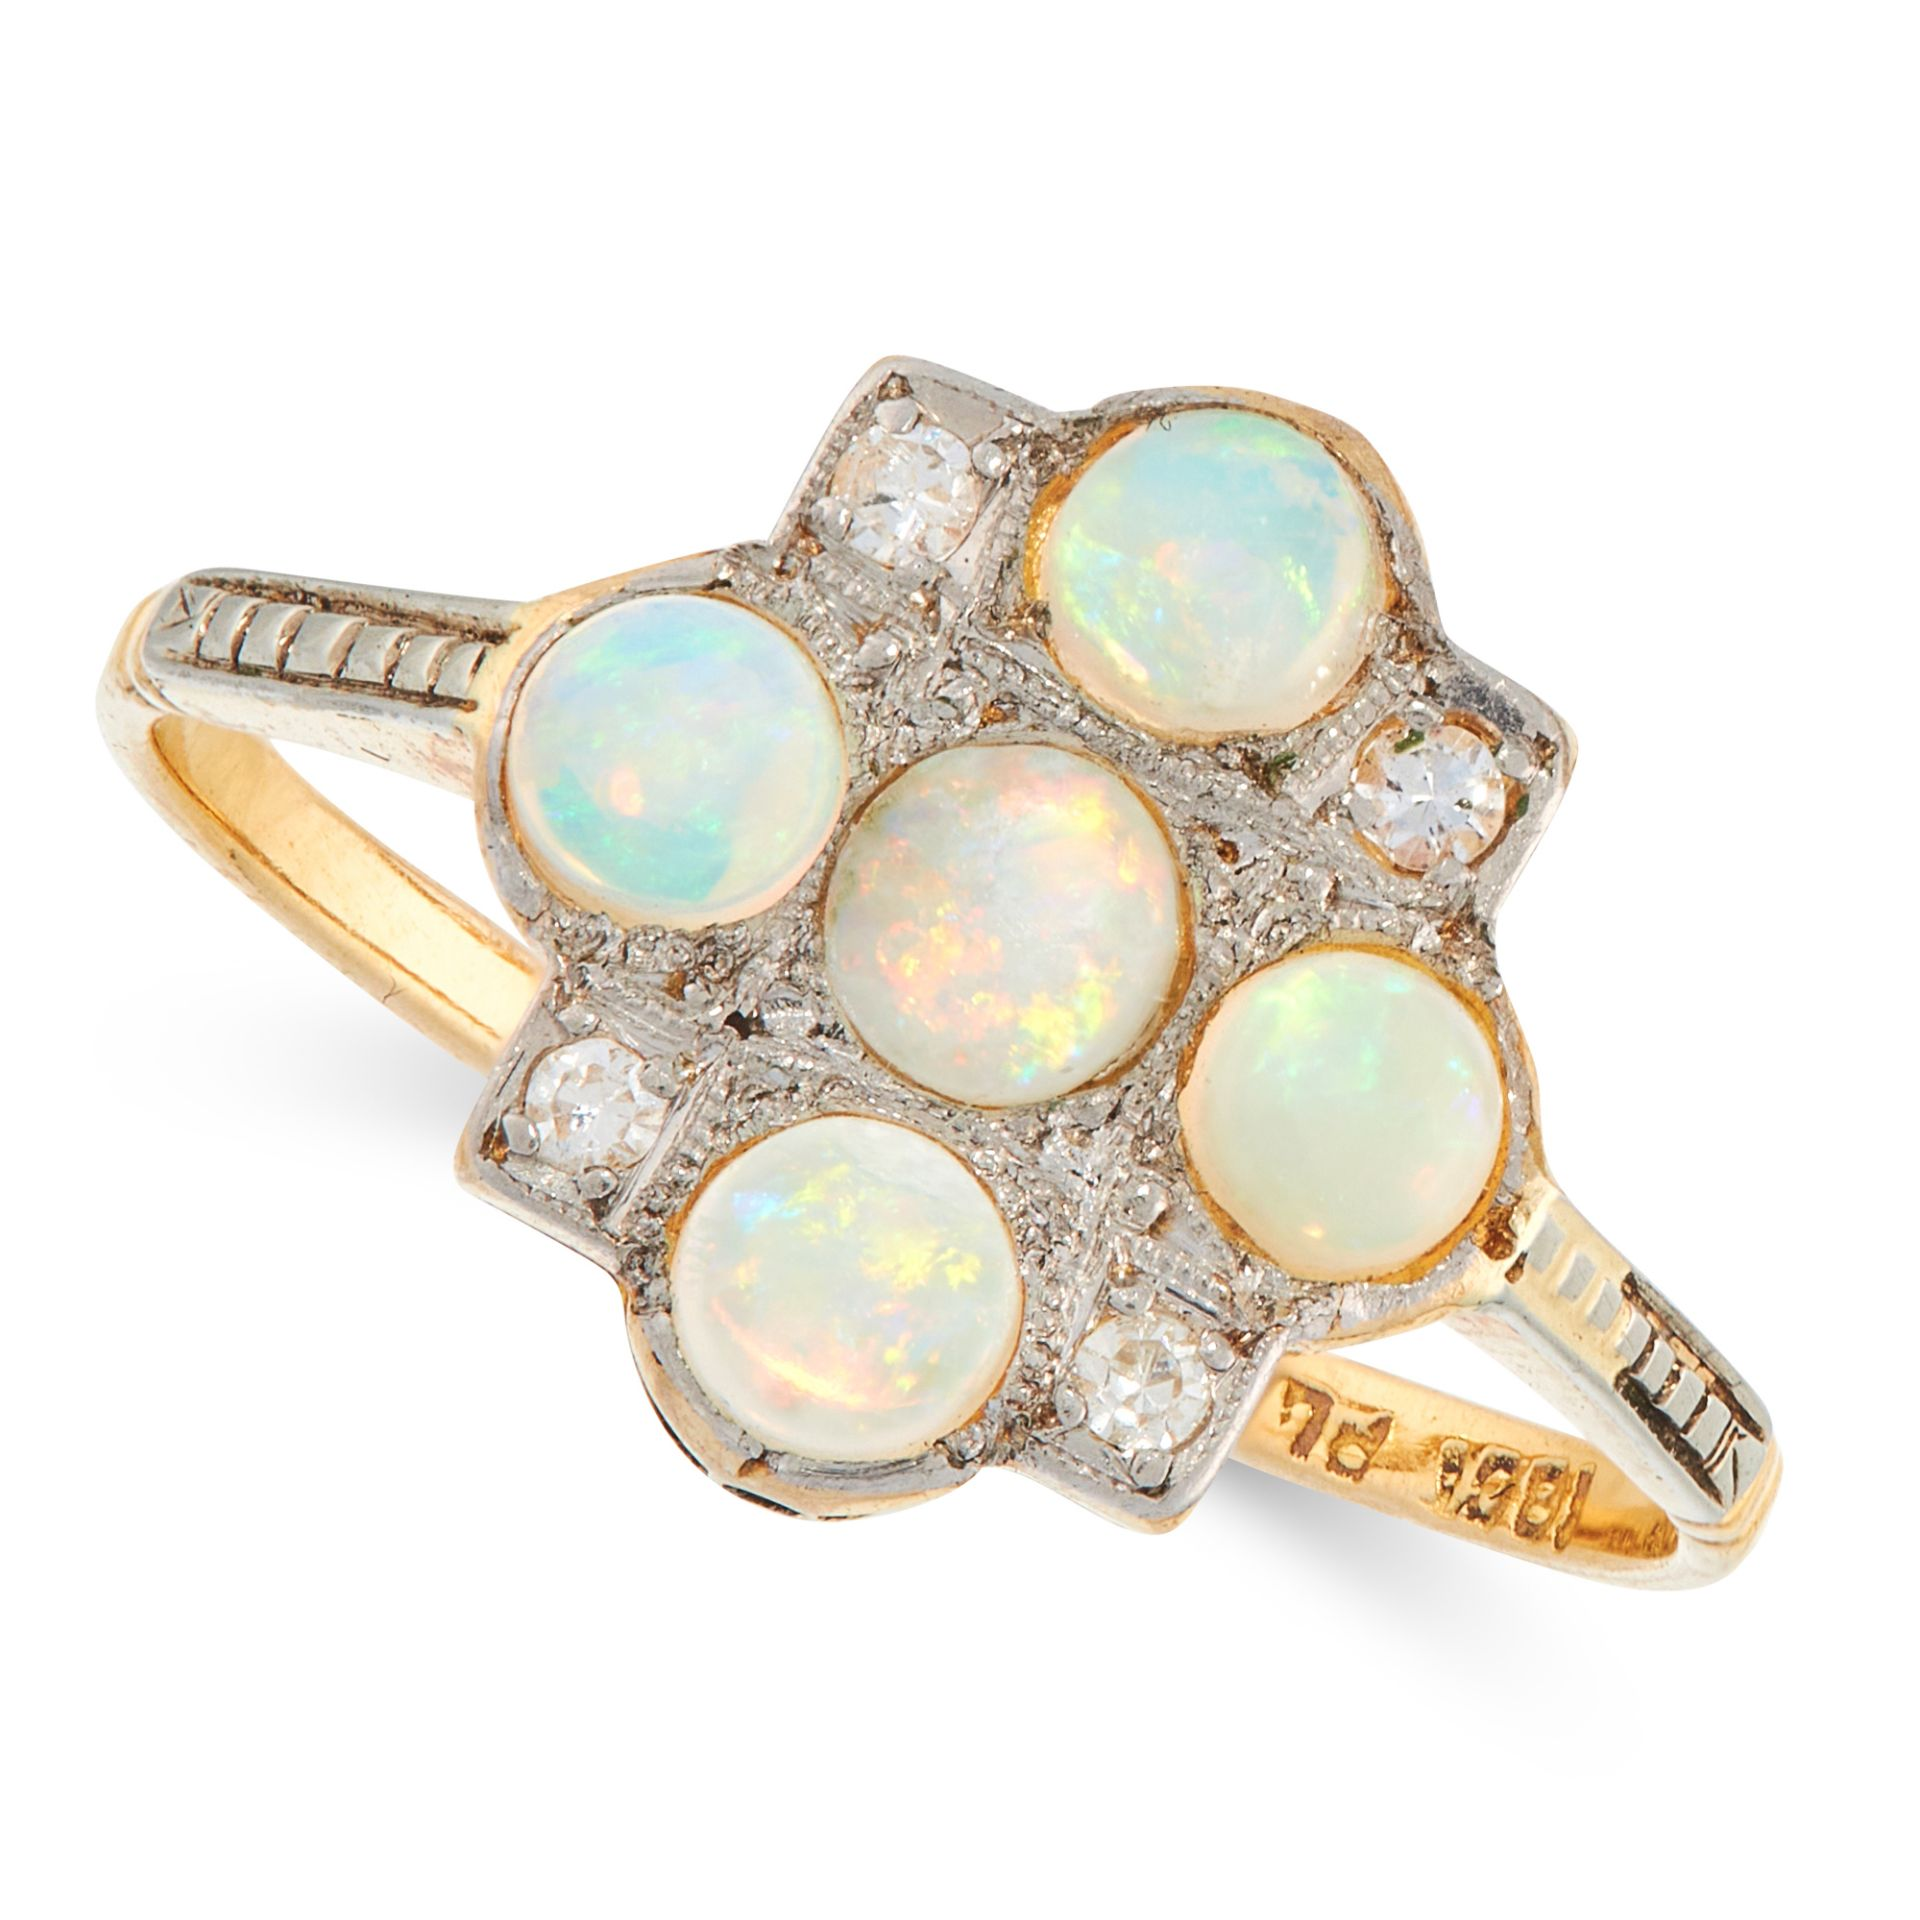 AN OPAL AND DIAMOND DRESS RING, EARLY 20TH CENTURY in 18ct yellow gold and platinum, set with five